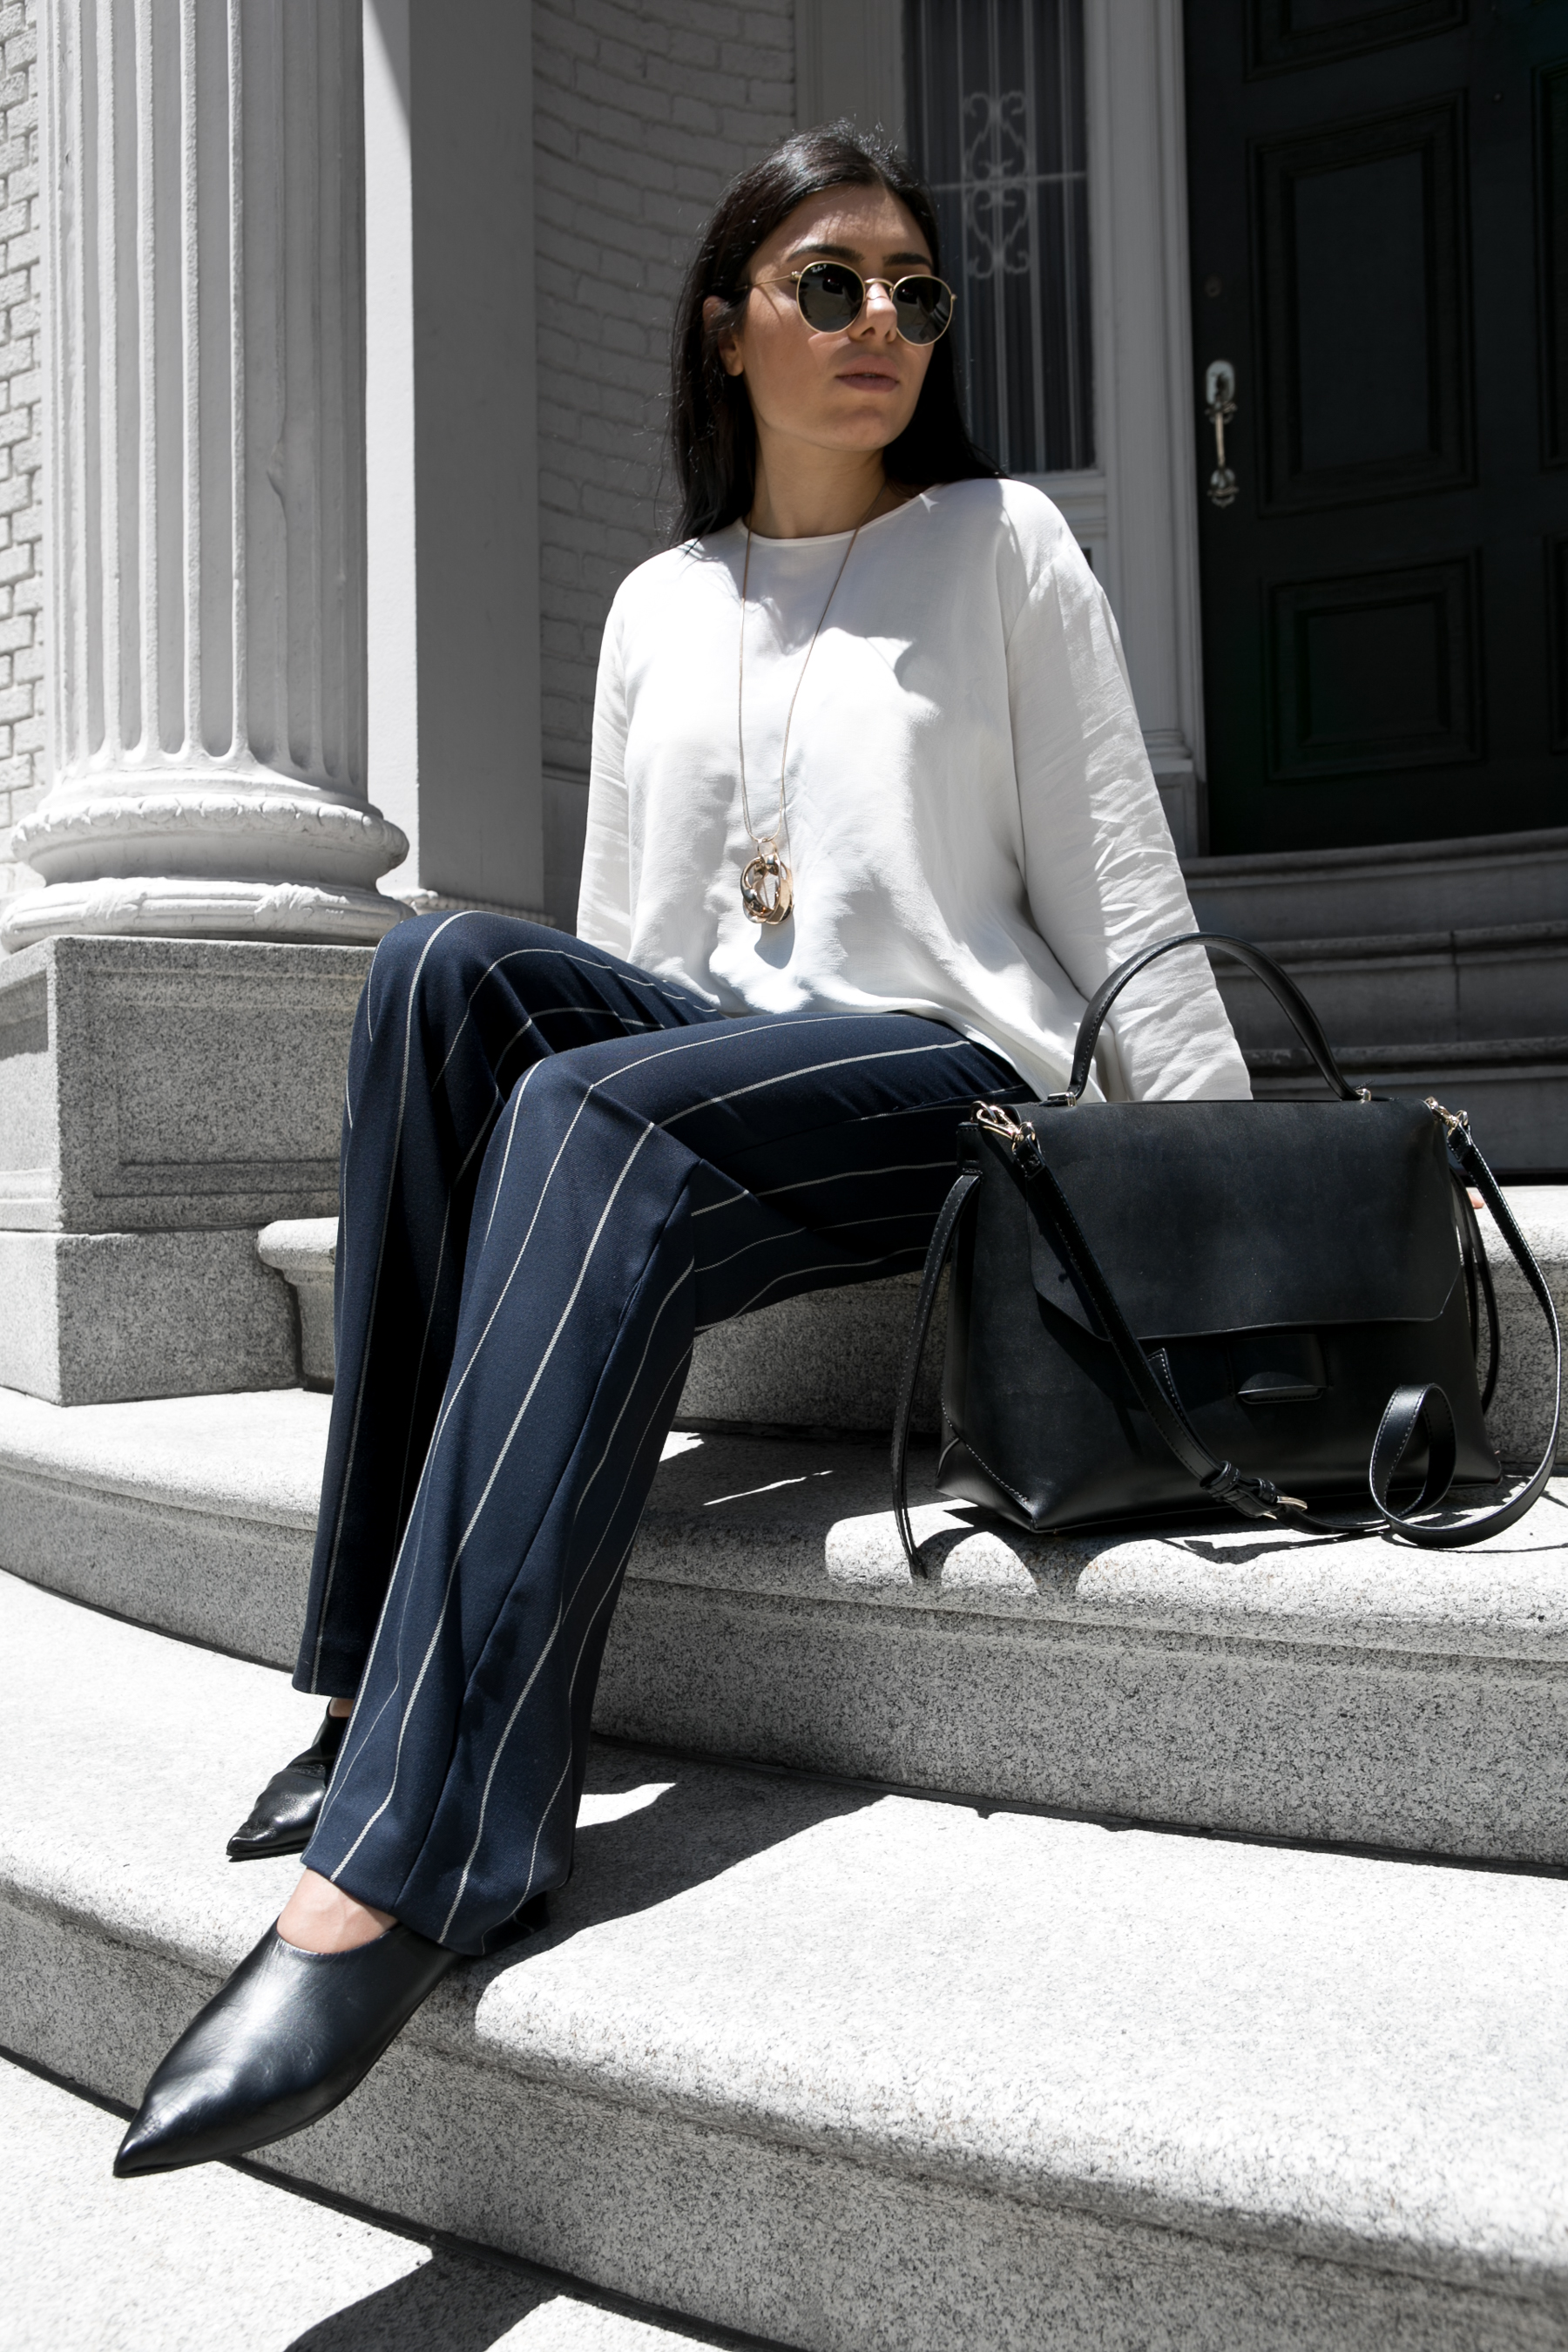 Wide Leg Stripes and white flowing blouse - outfit